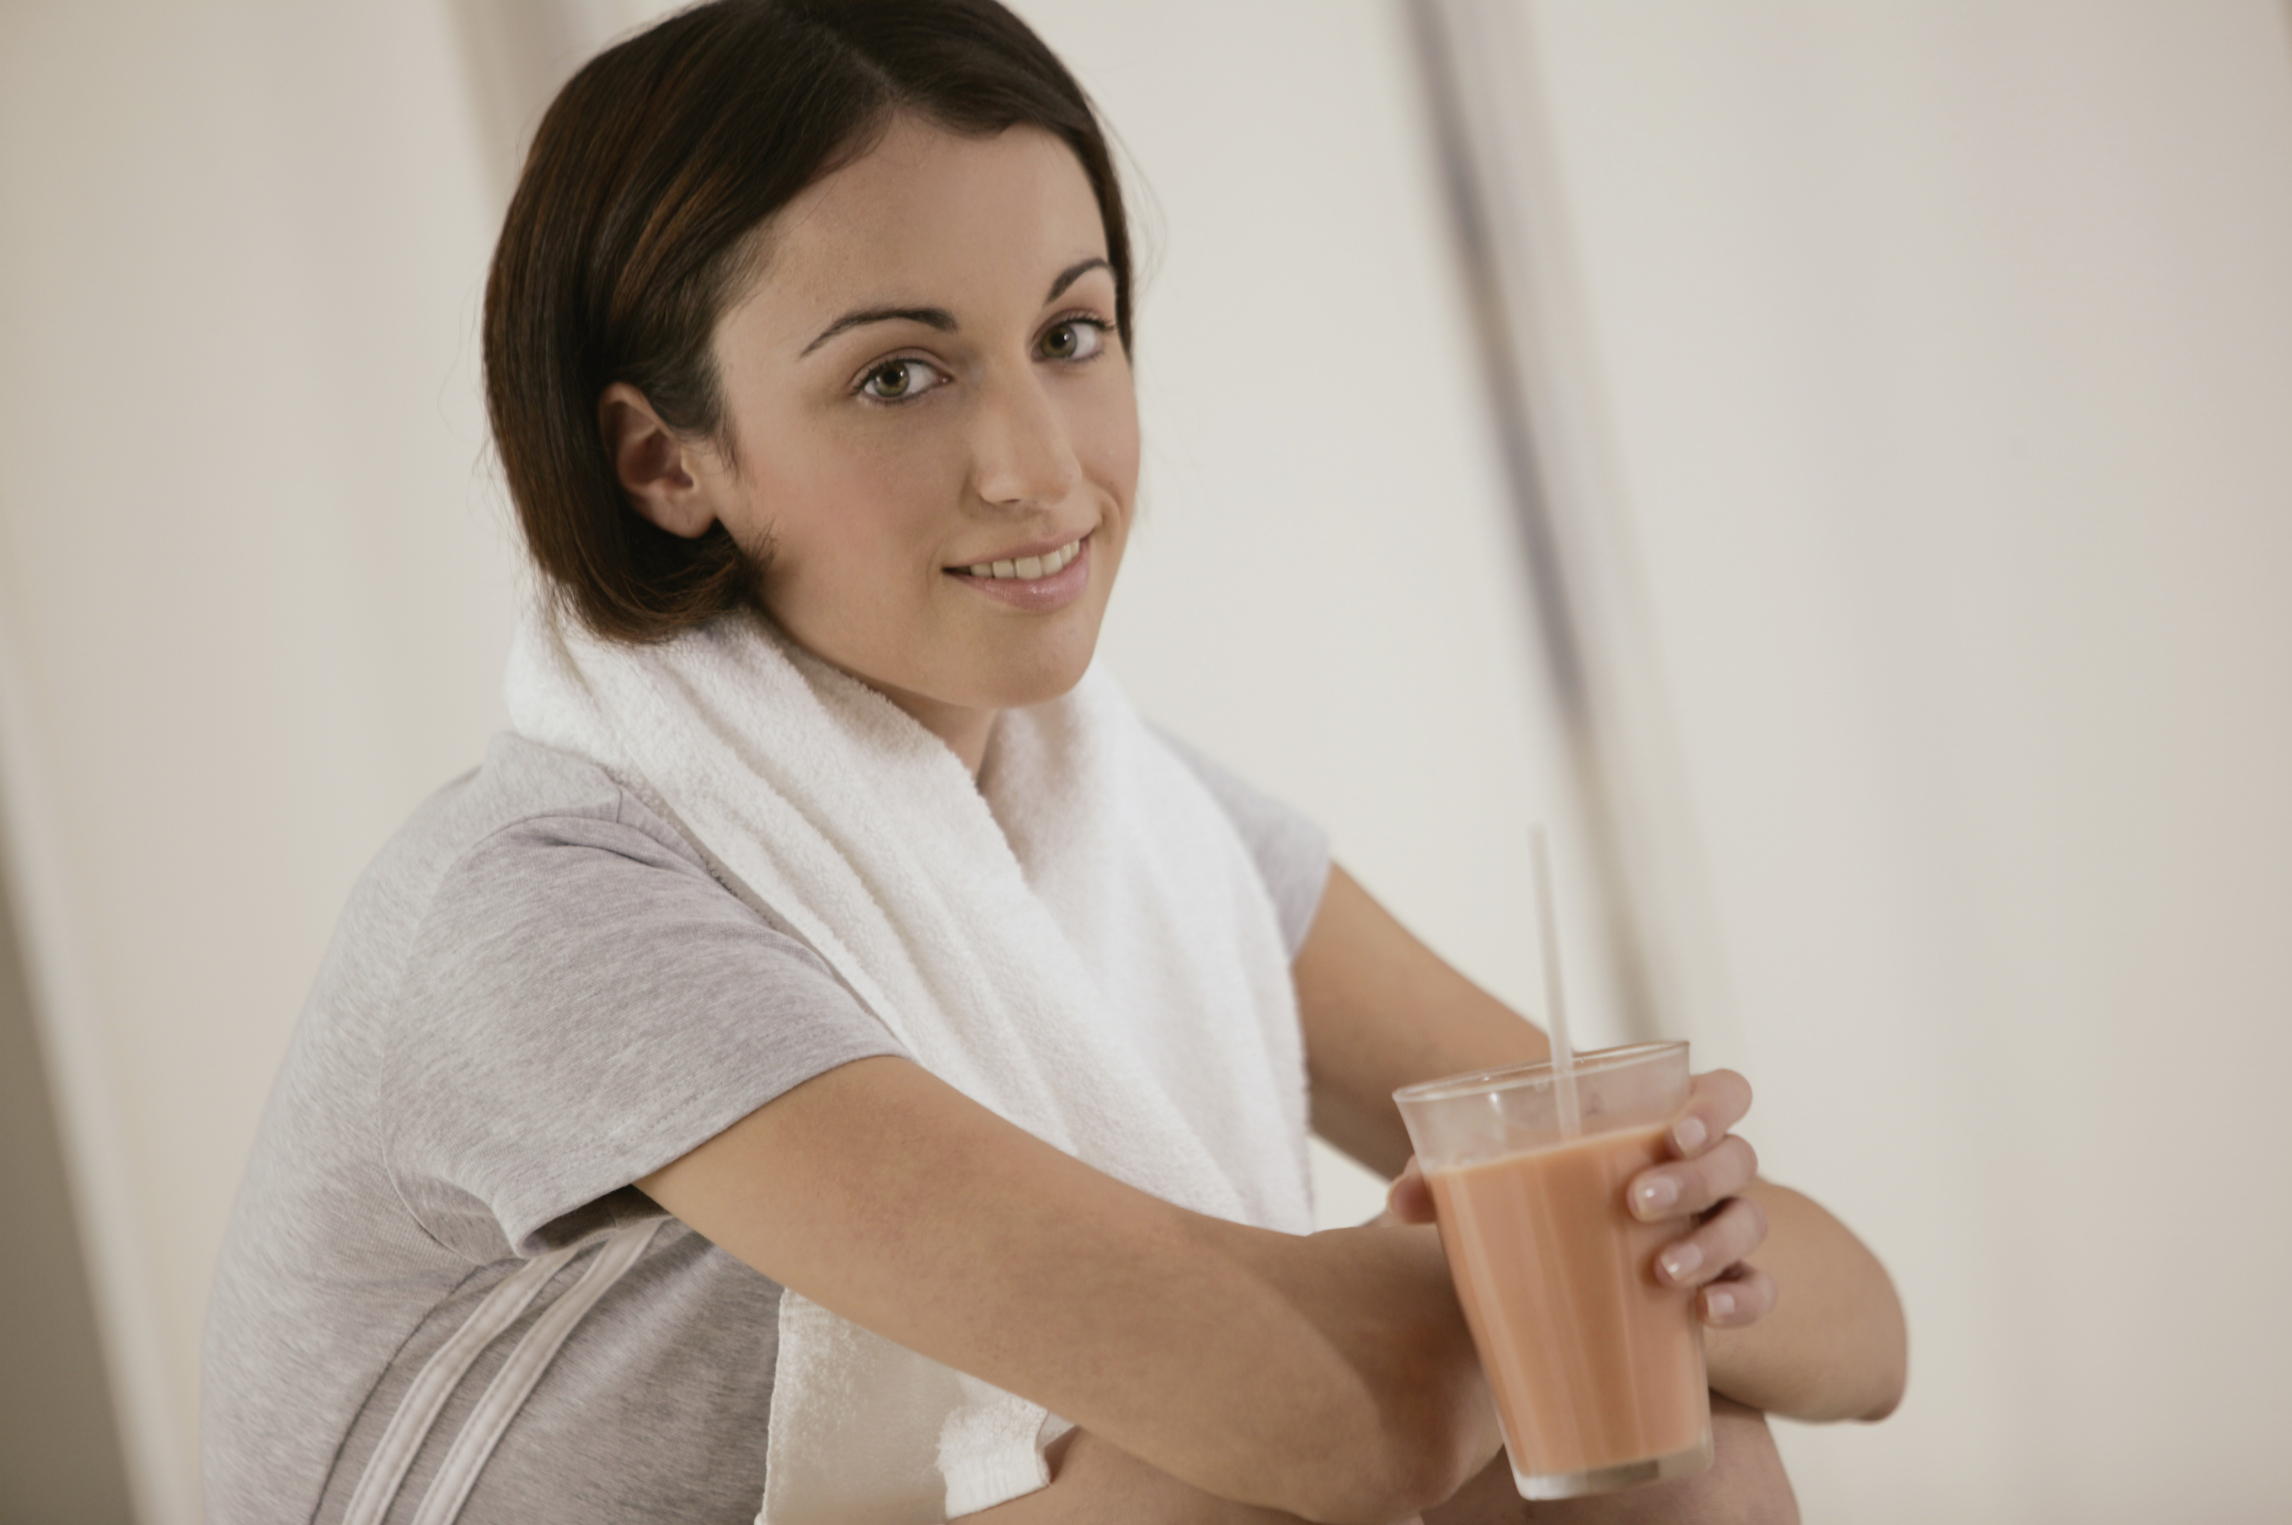 Protein shakes give you extra calories and may contribute to weight gain.